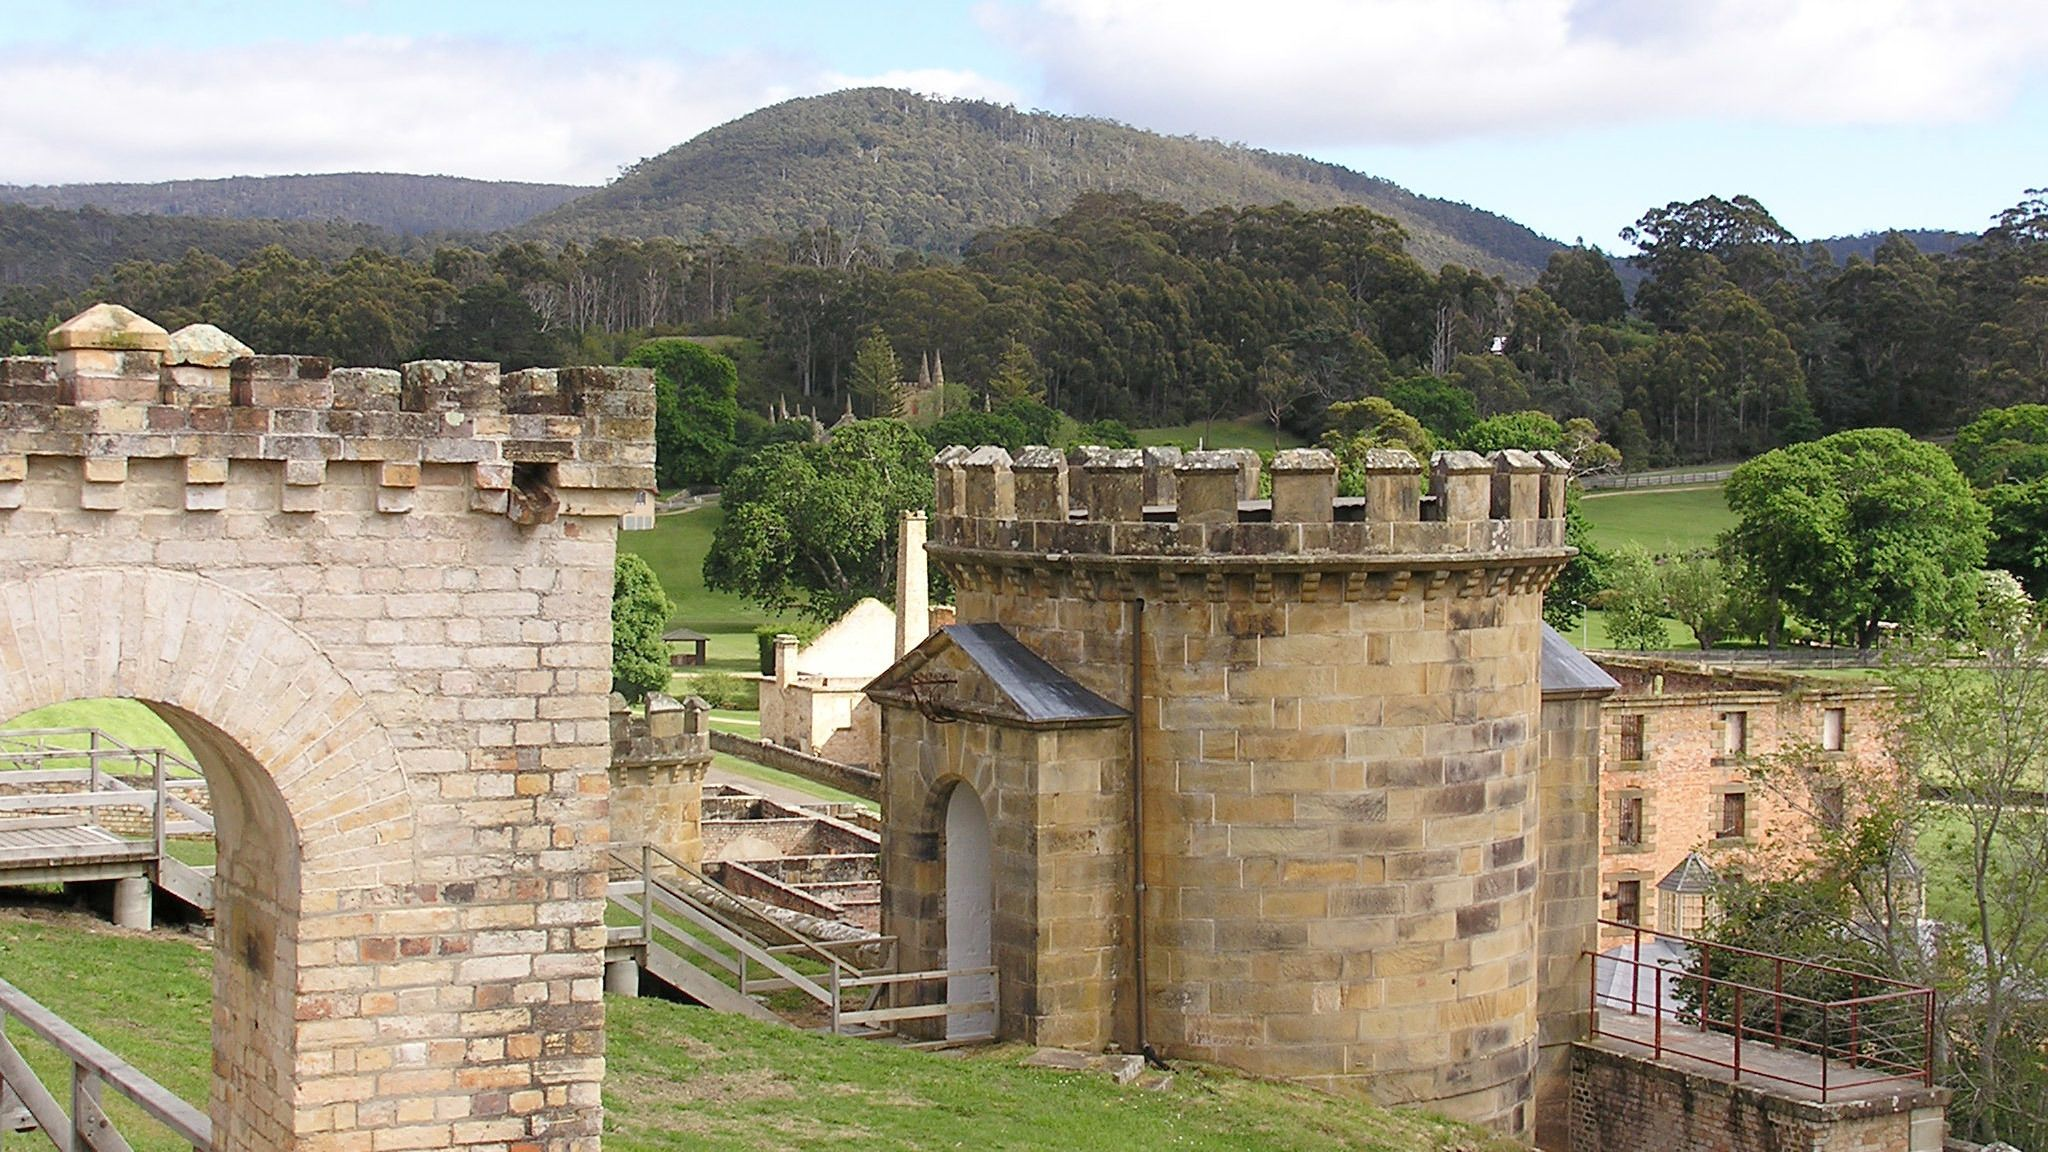 Remains of an old stone building in Hobart